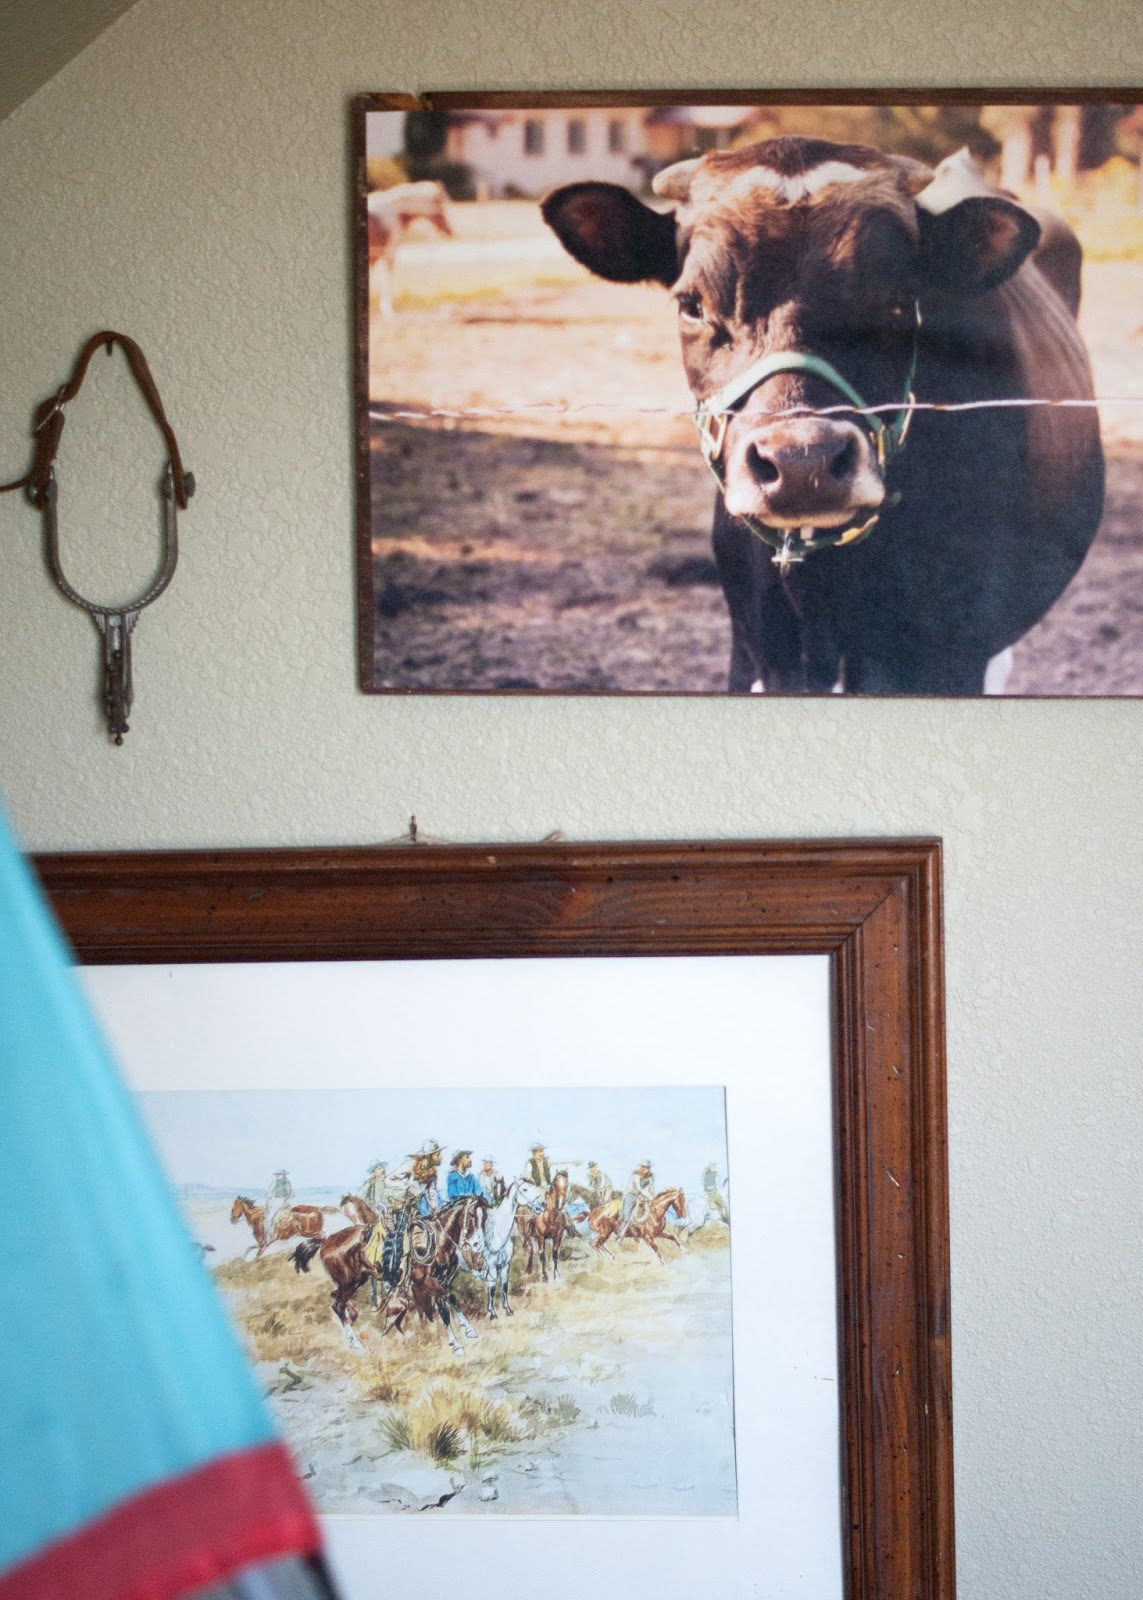 Russel Print, Cow Artwork and child's spur in Vintage Western Room